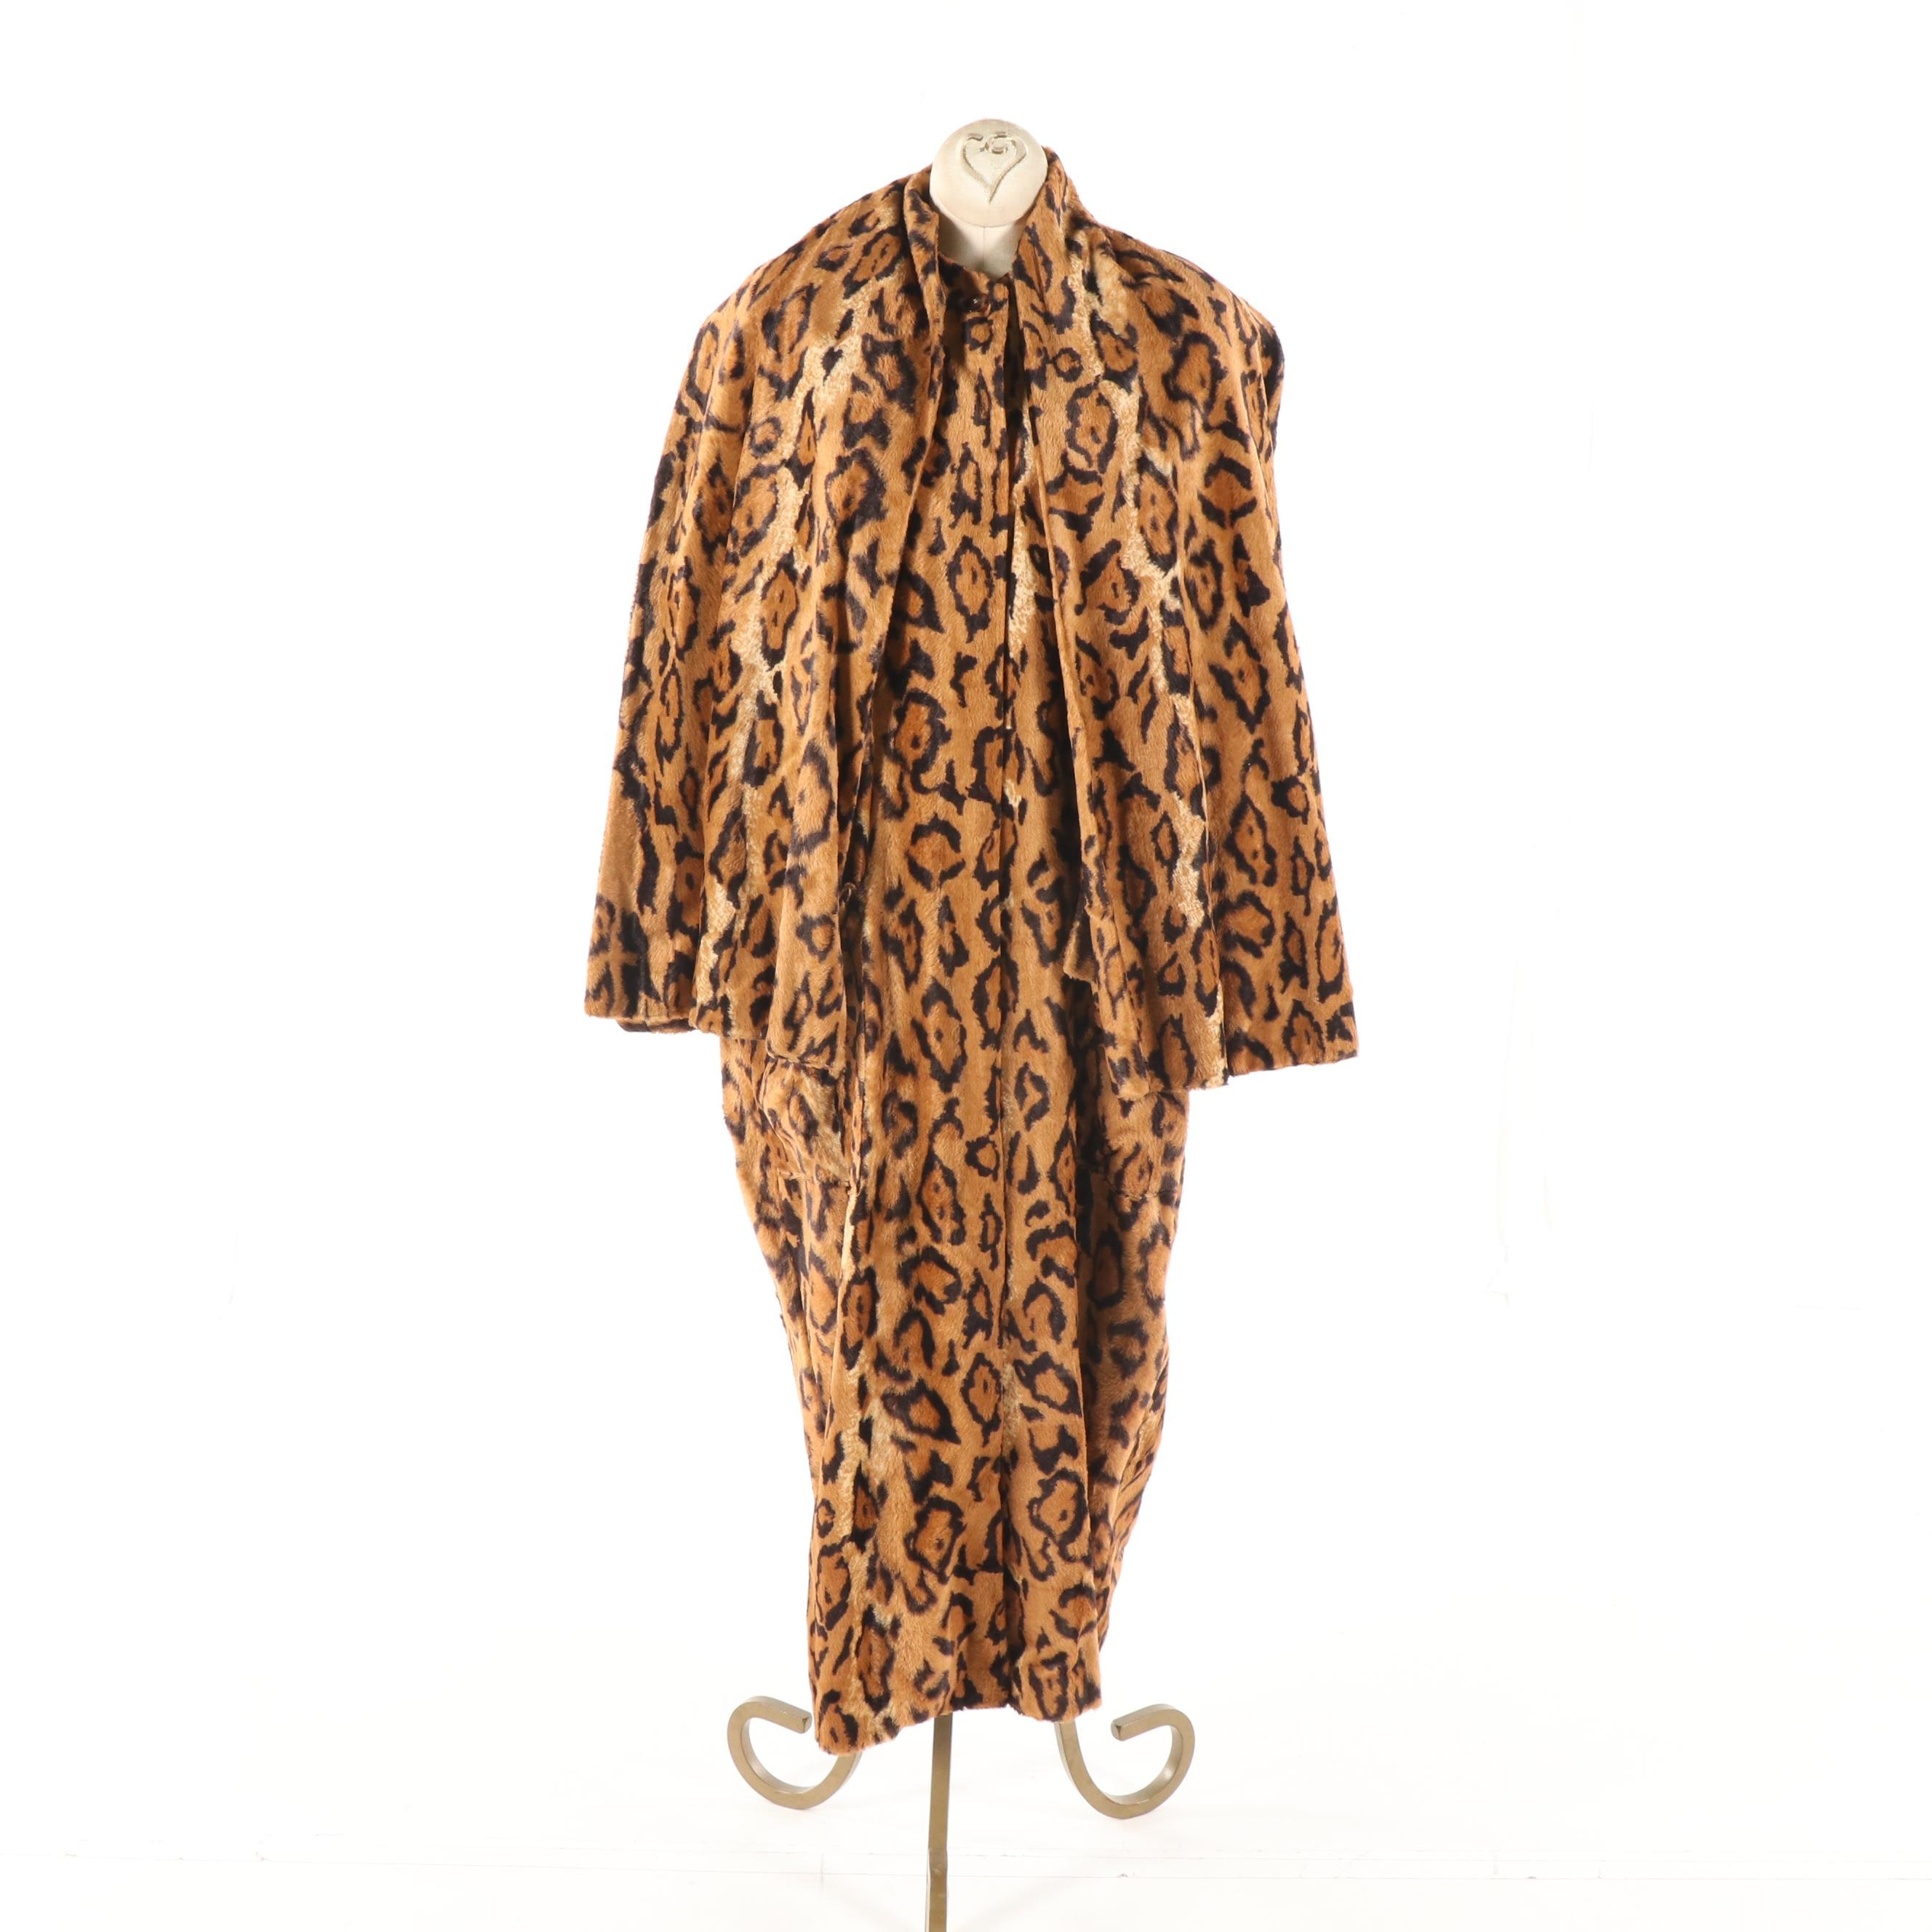 1980s Vintage Lillie Rubin Leopard Print Faux Fur Oversized Coat with Scarf